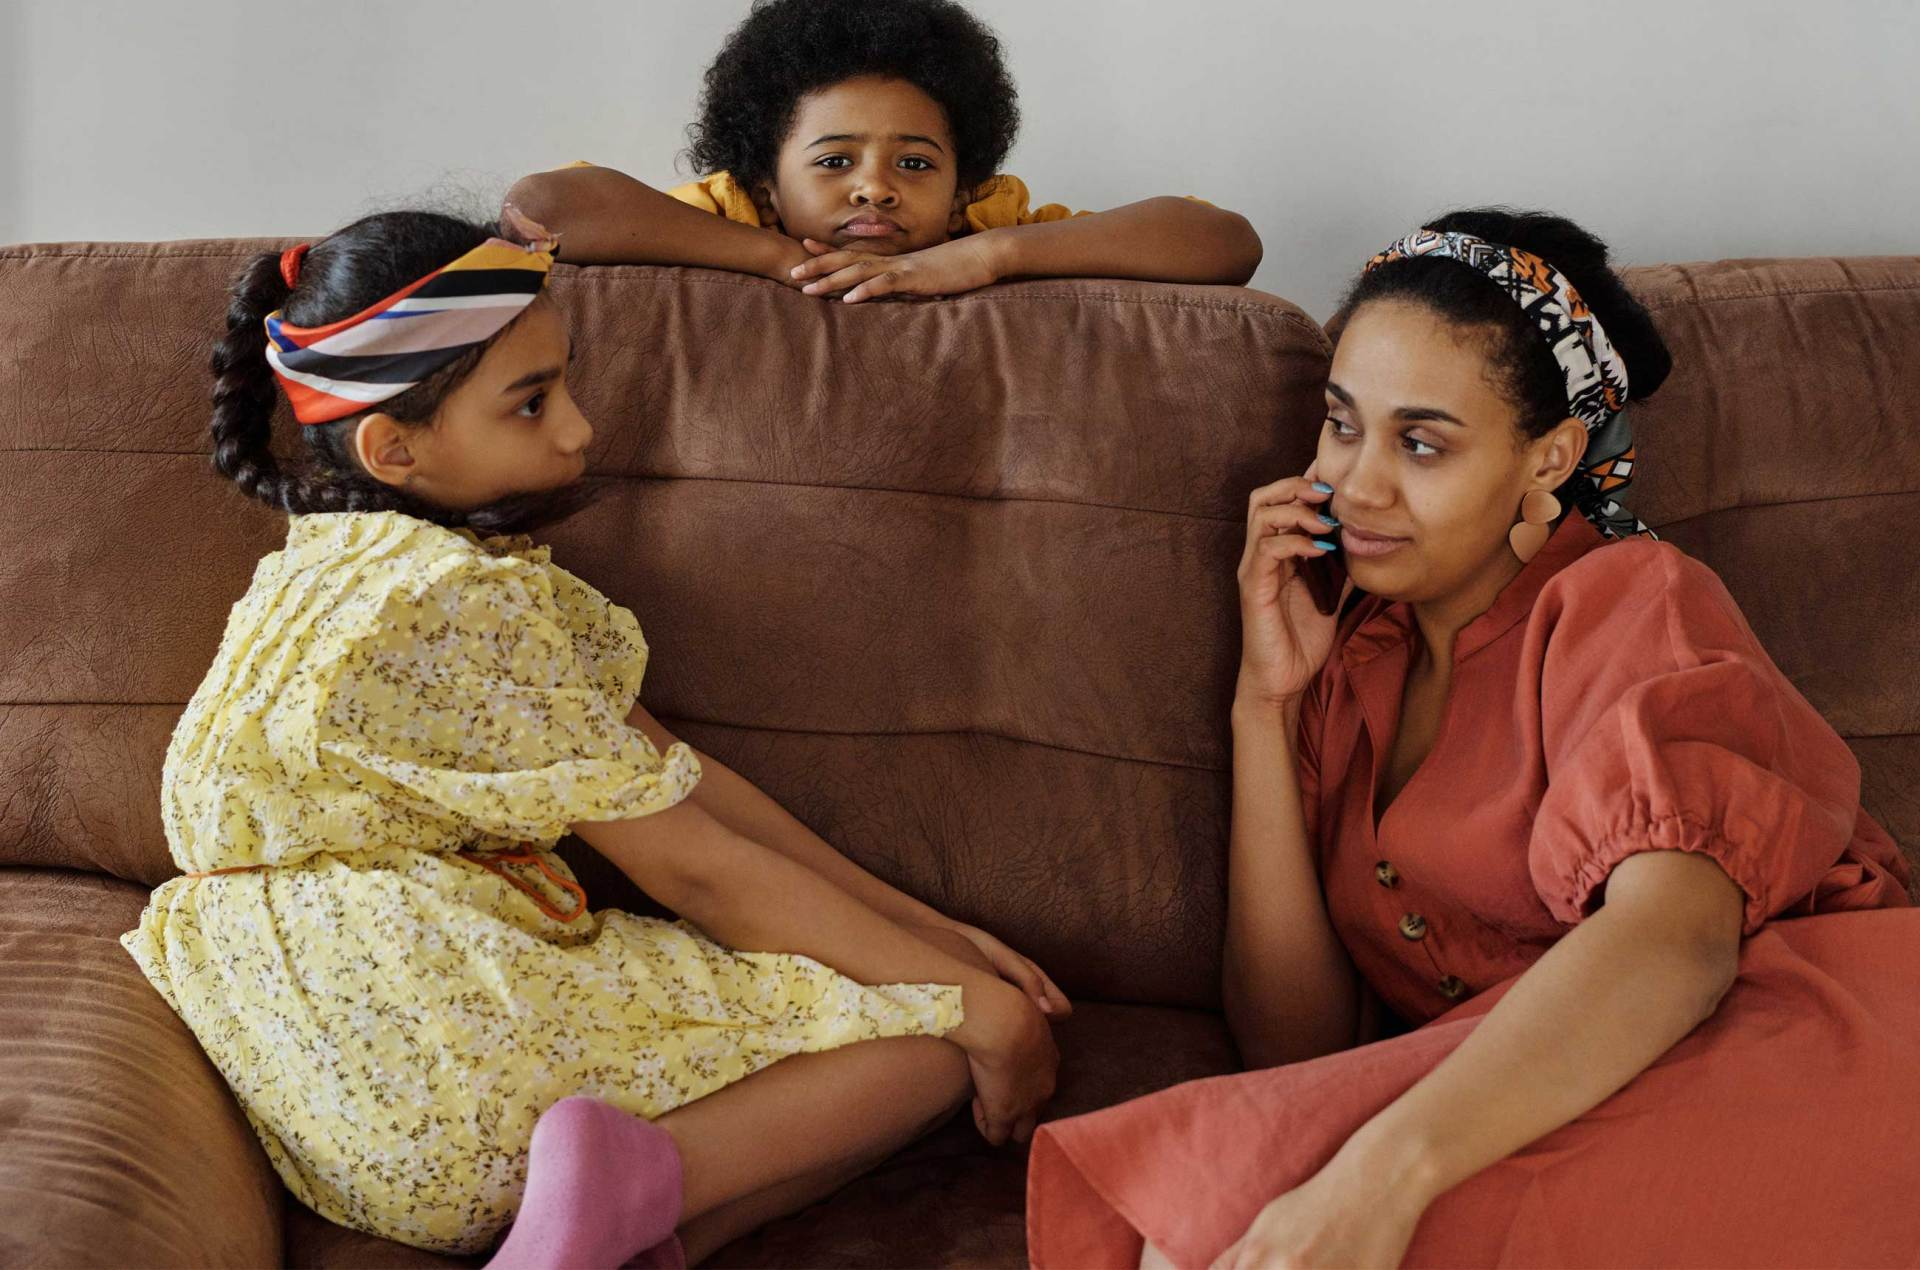 Children with their mother on a sofa